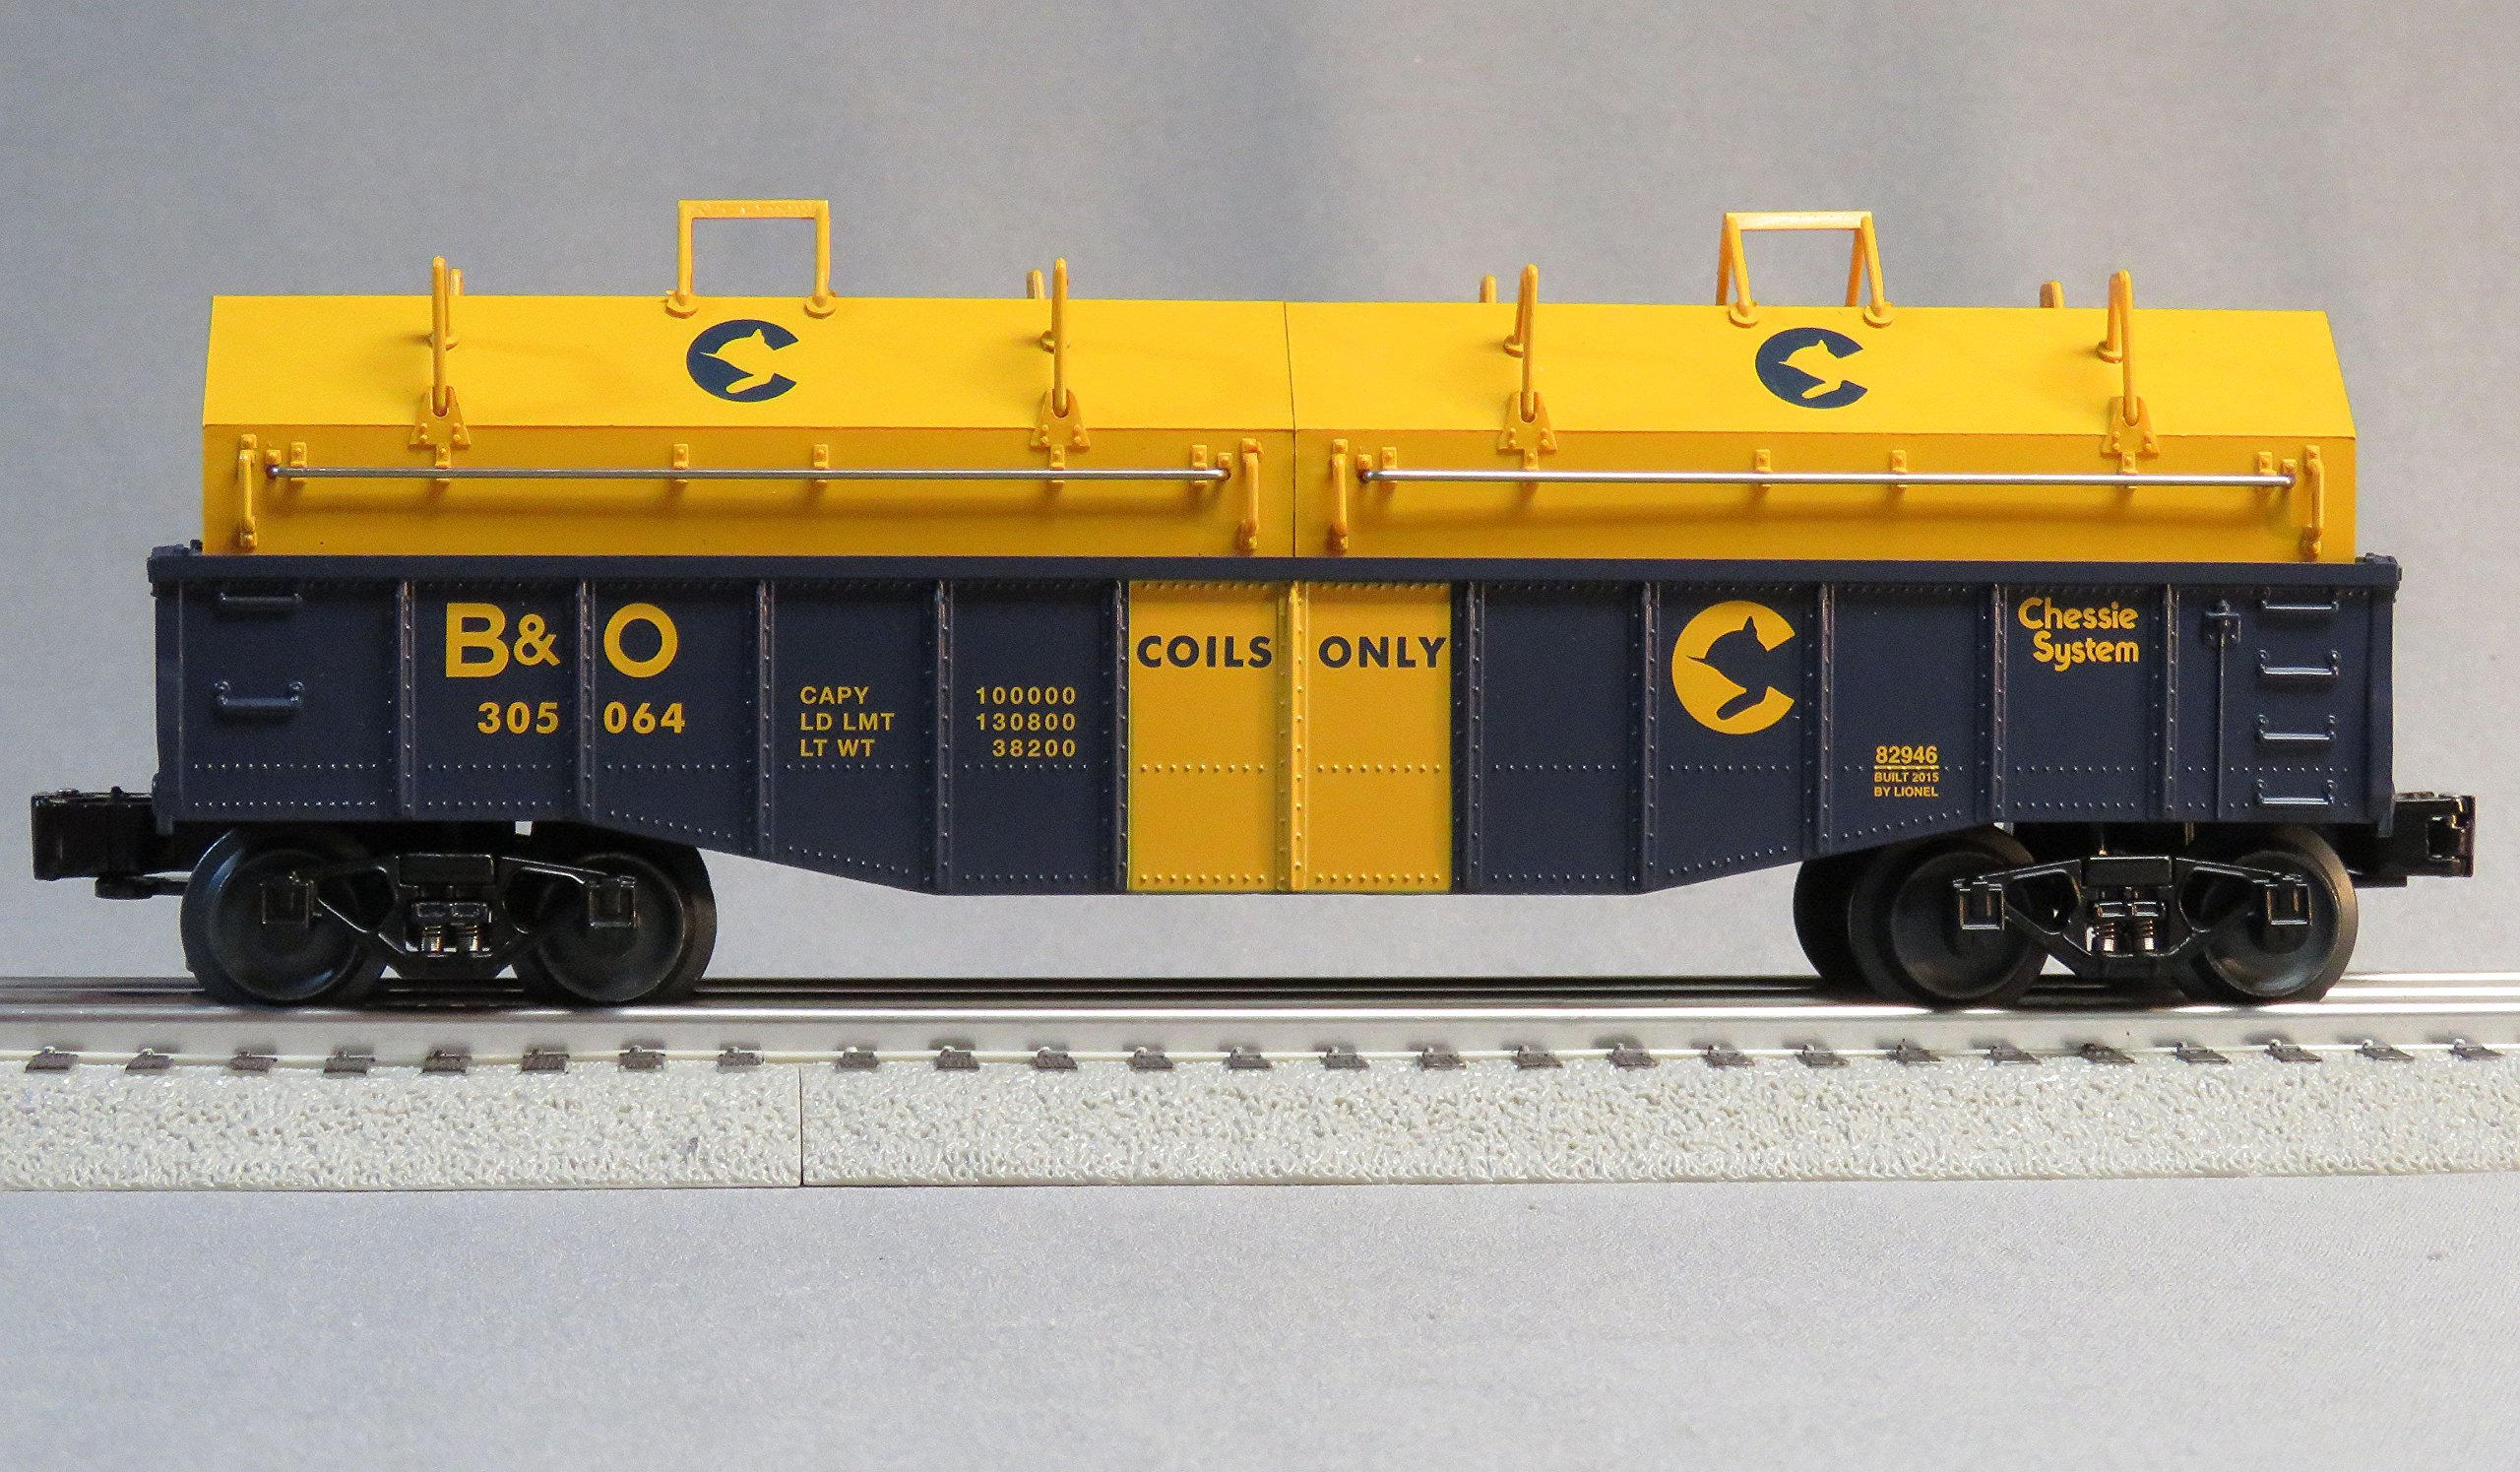 Lionel Chessie Gondola Coil Covers 305064